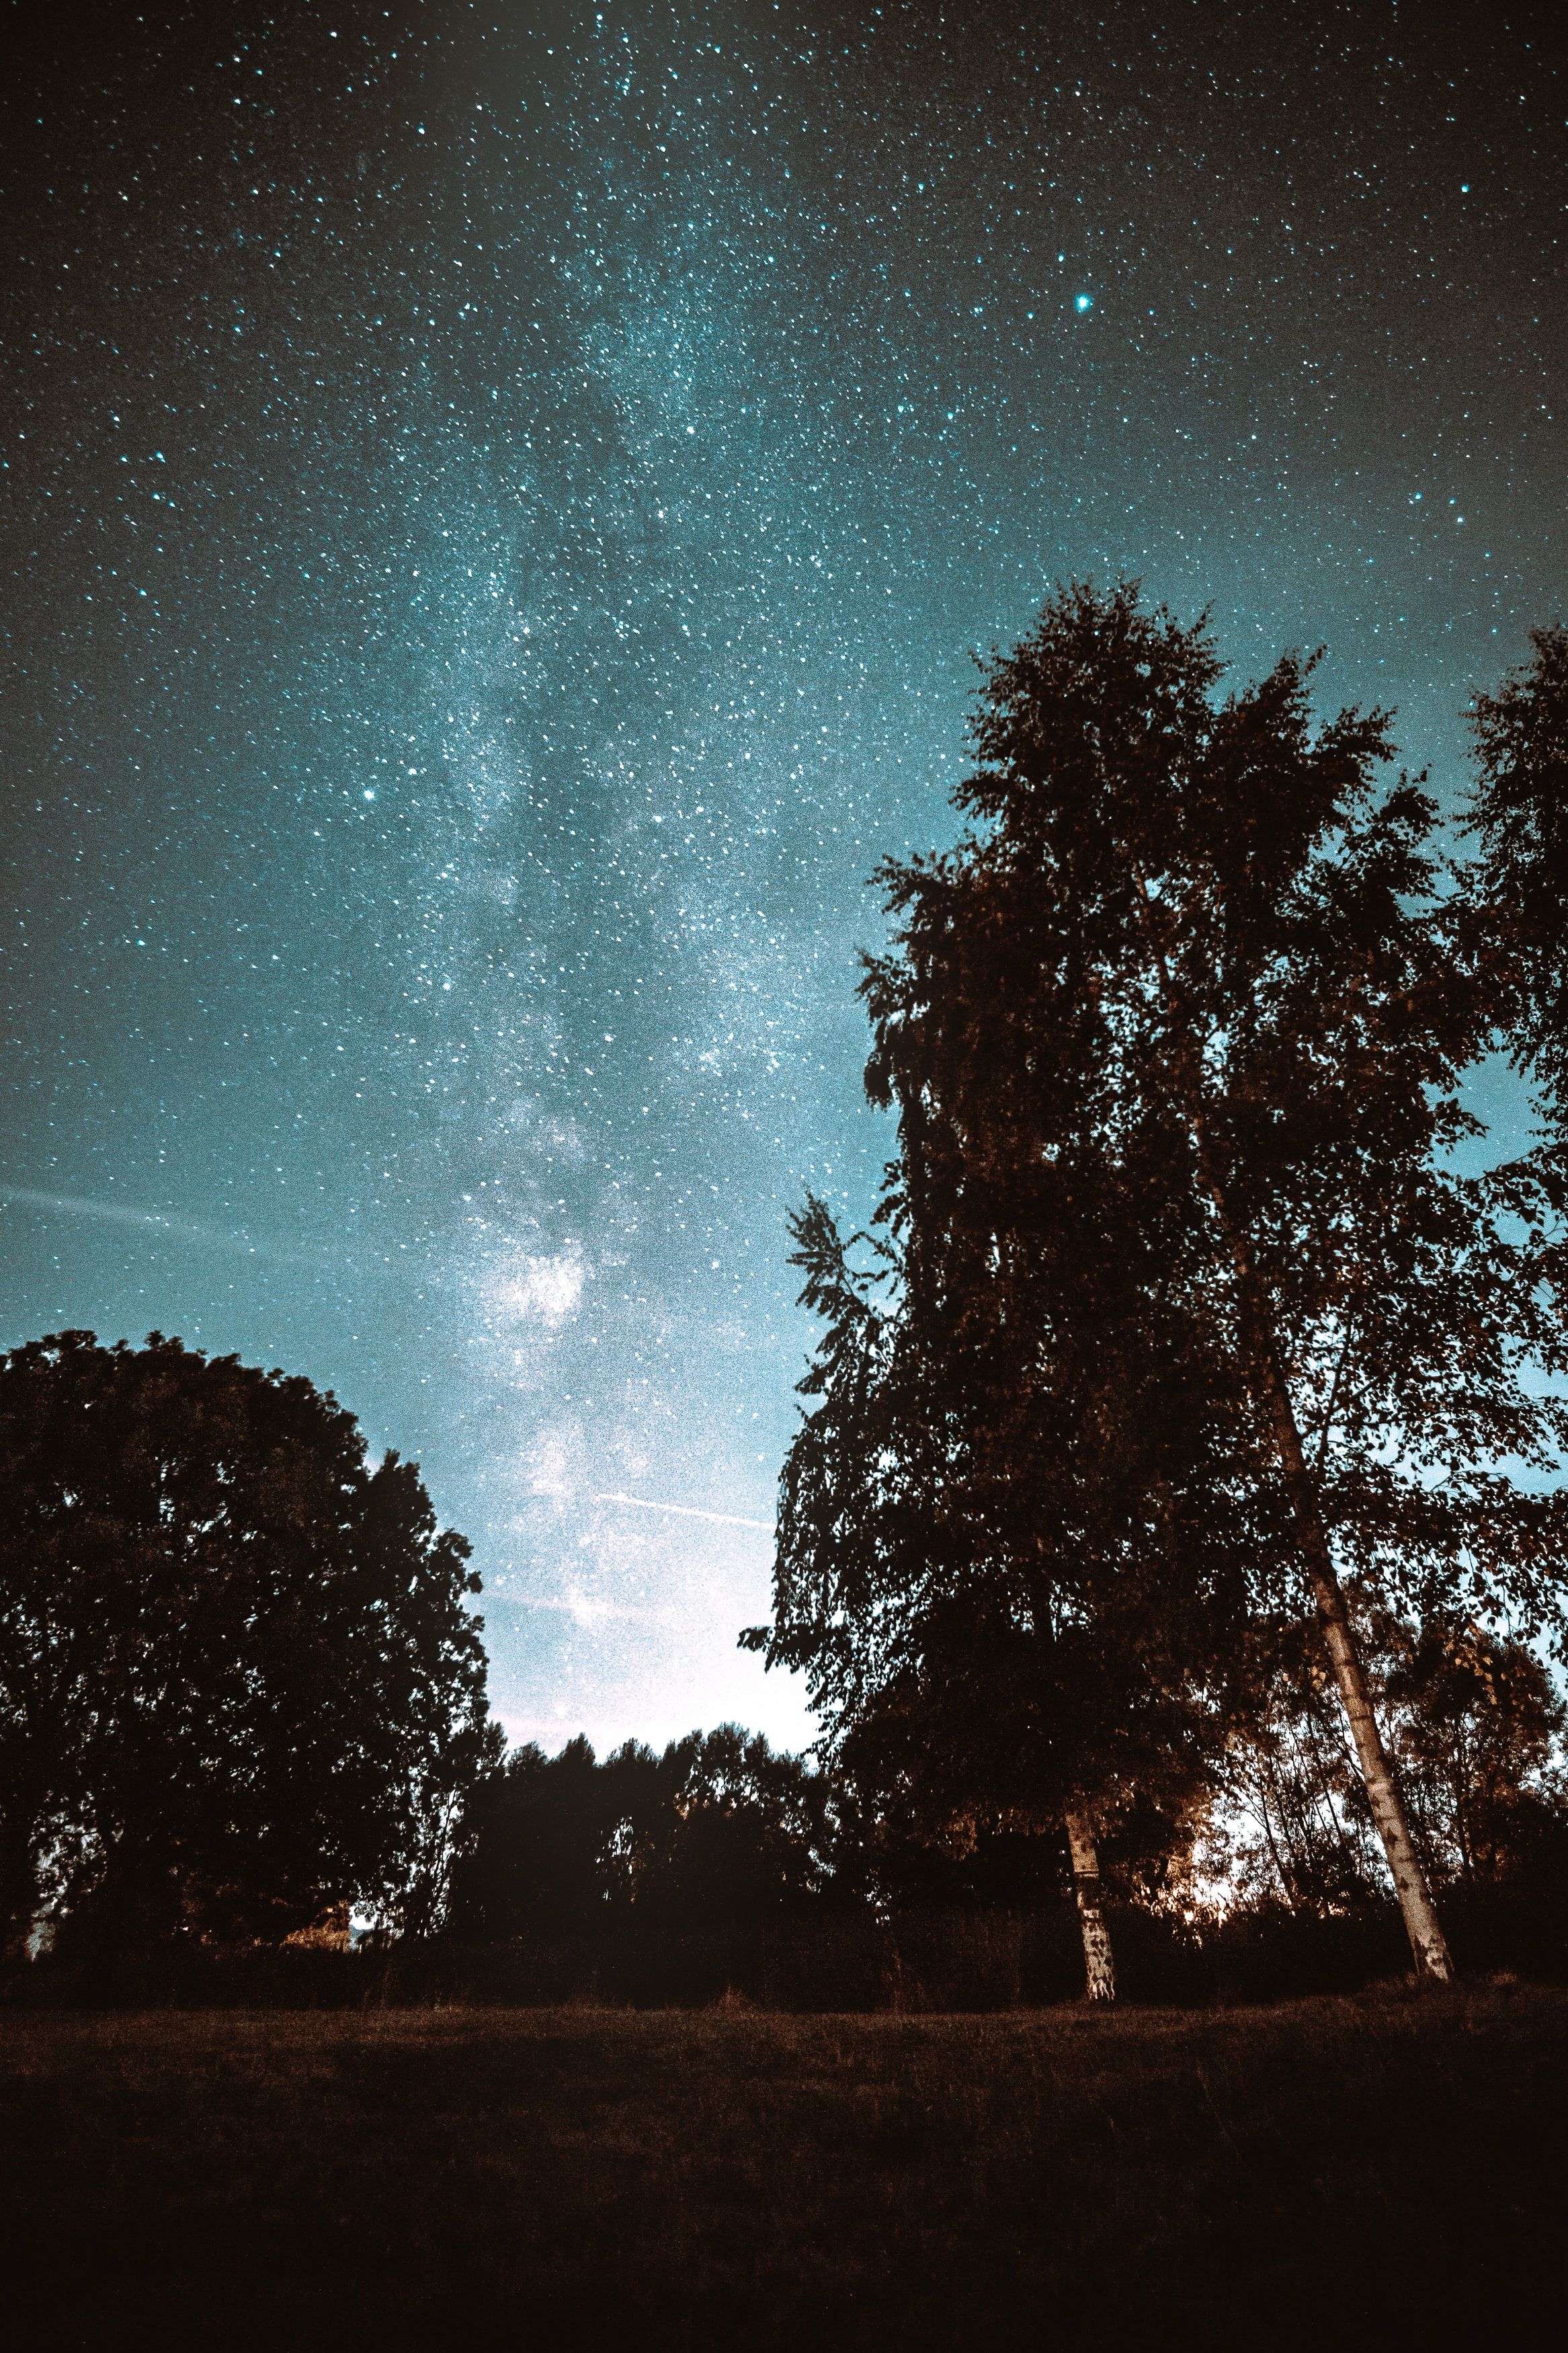 silhouette of trees and milky way